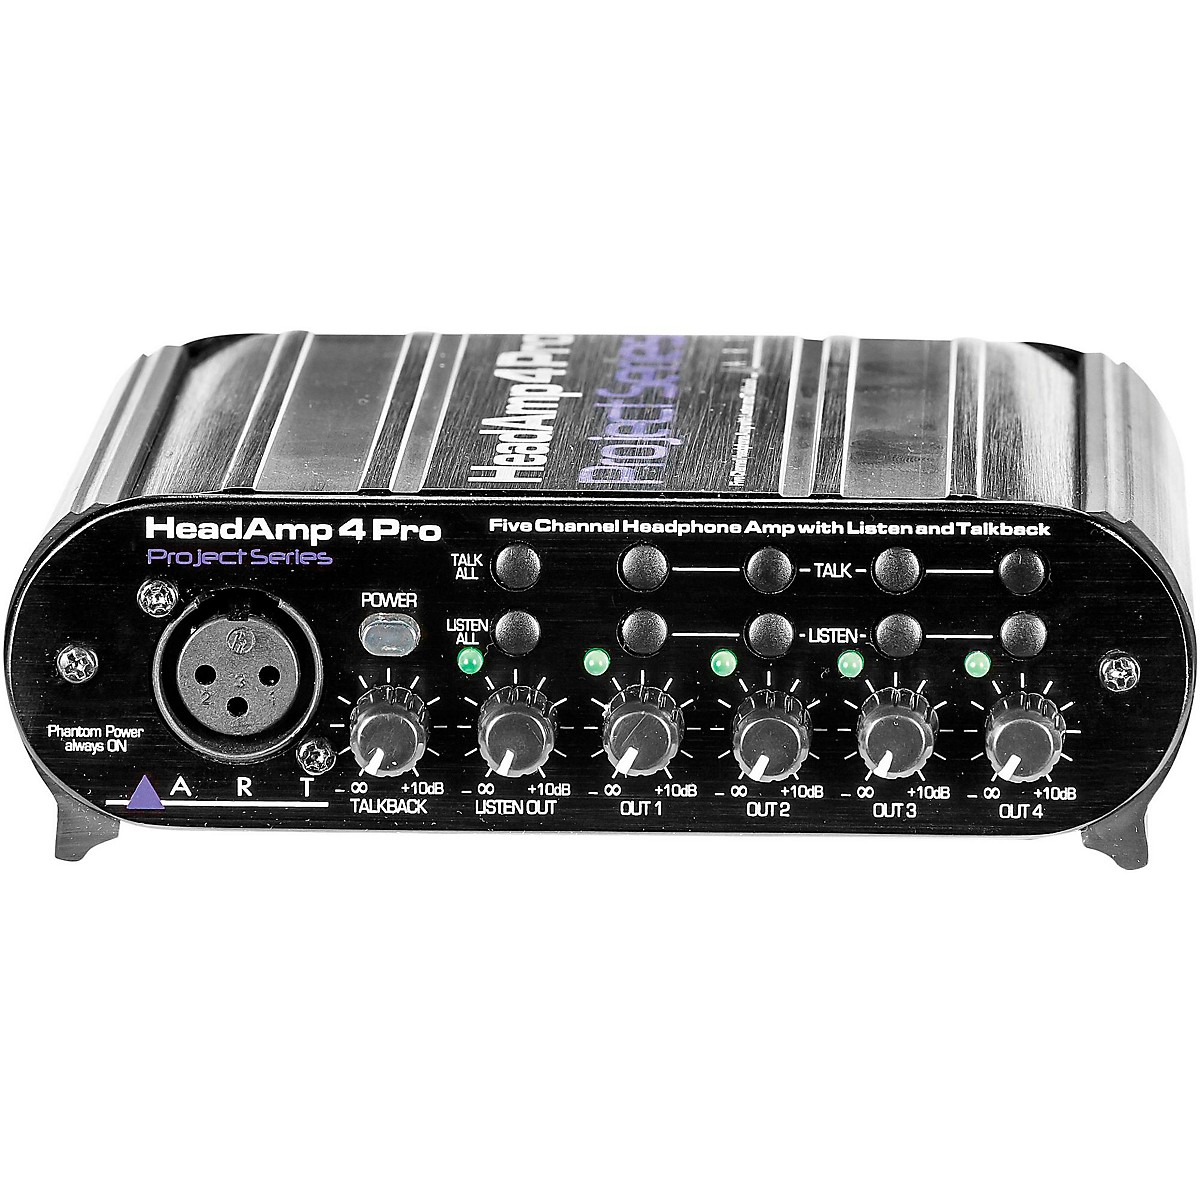 Art HeadAmp 4 Pro with Talk Back